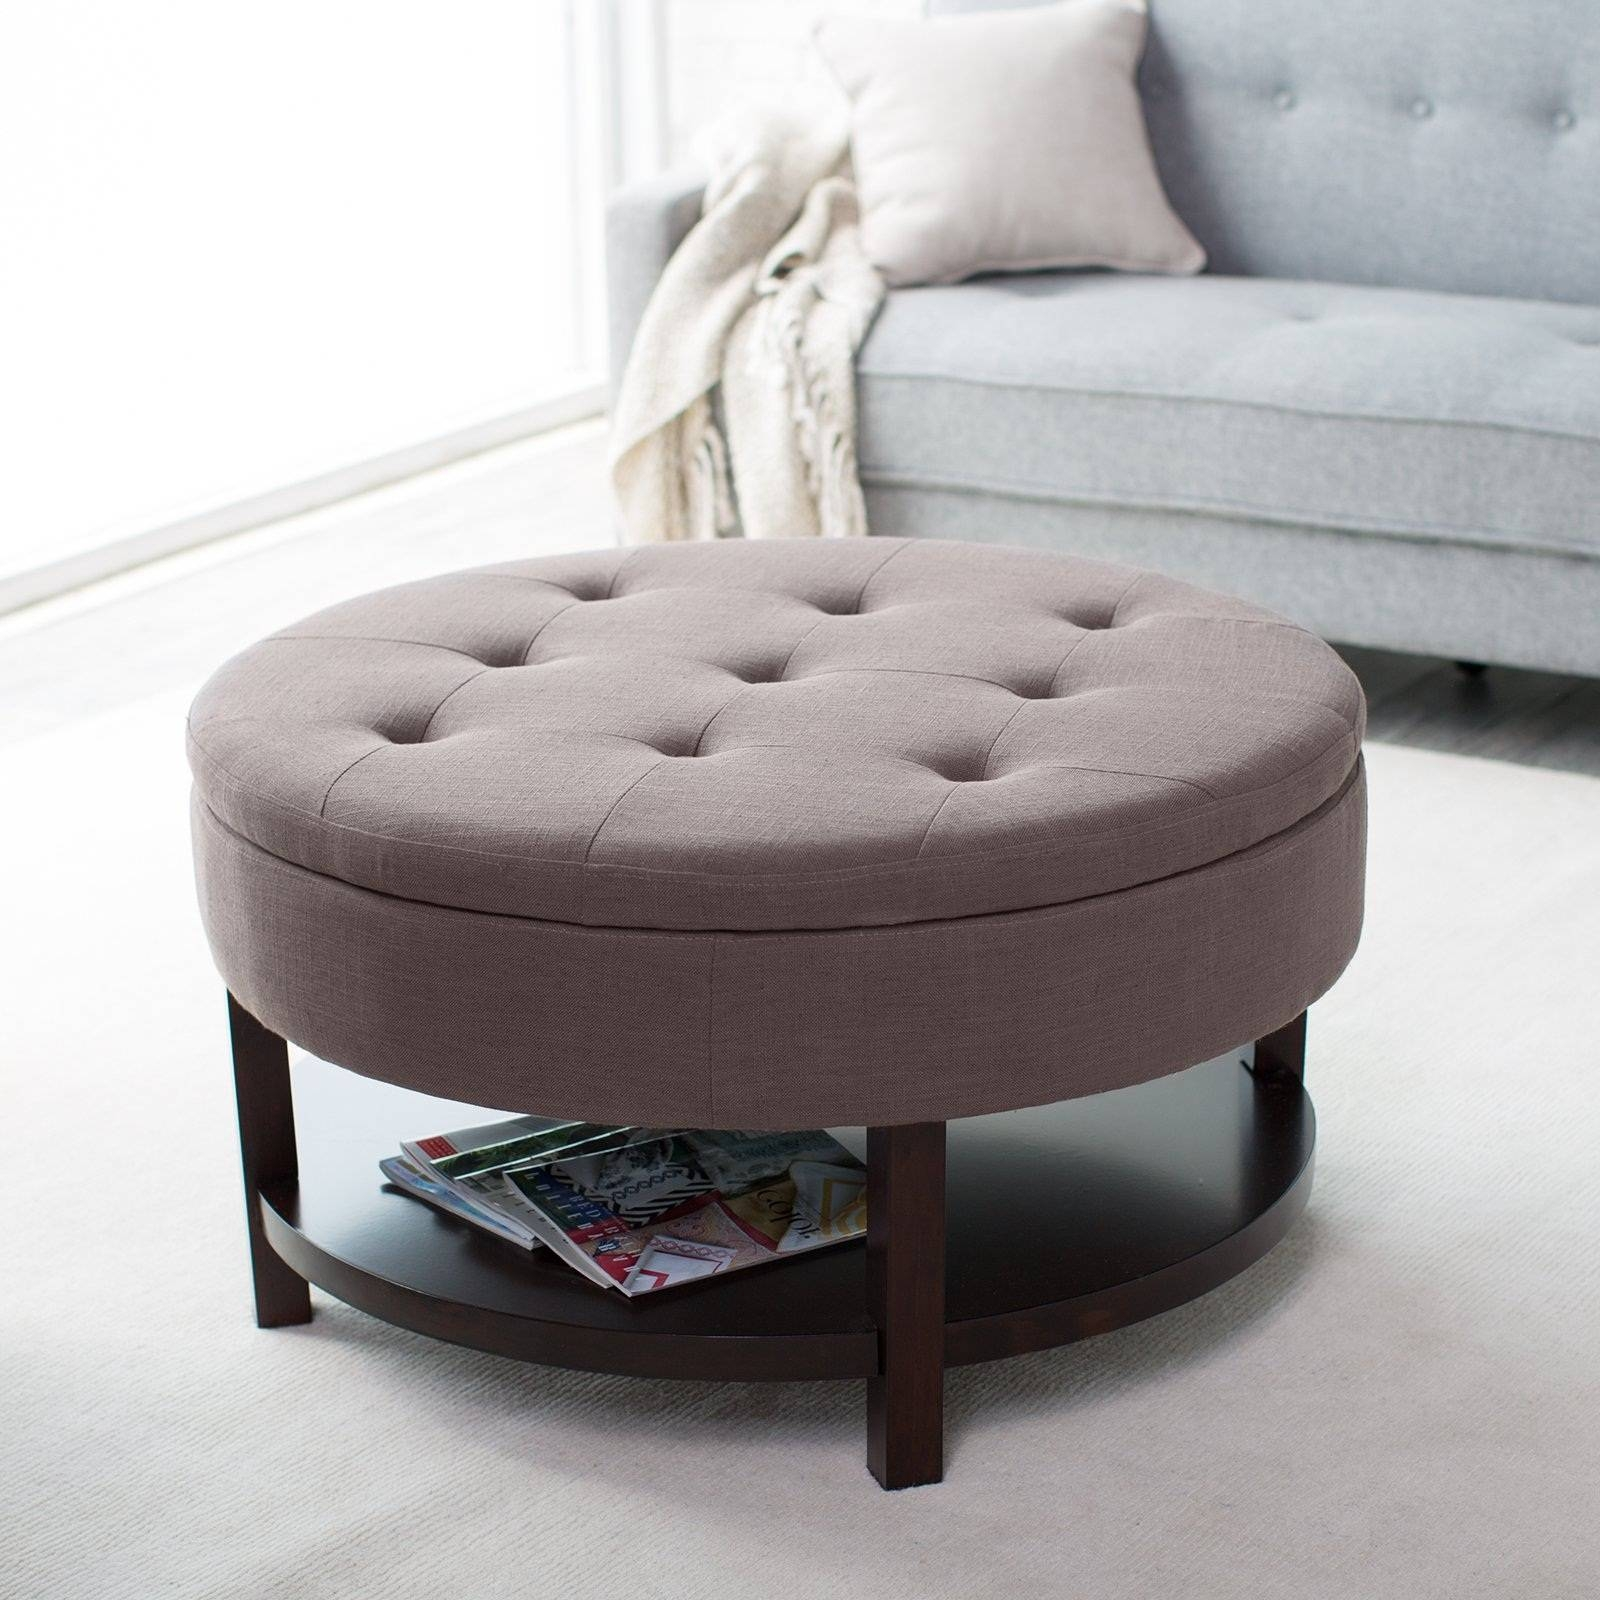 Coffee Table: Astounding Large Round Ottoman Coffee Table Ideas pertaining to Fabric Coffee Tables (Image 2 of 30)